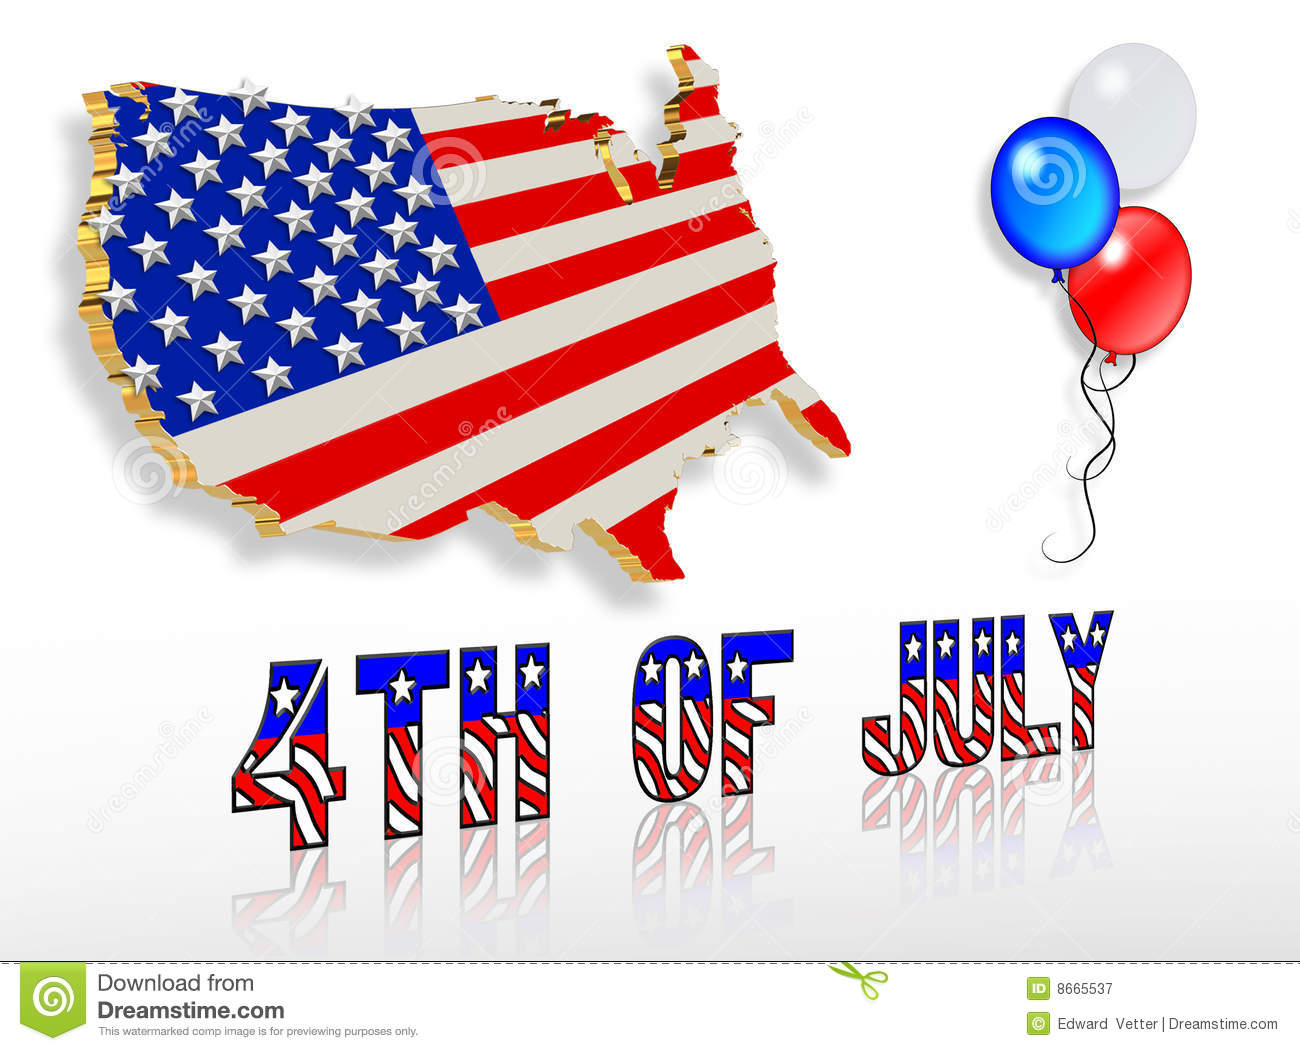 July 4th 3d patriotic clip art designs stock illustration july 4th 3d patriotic clip art designs publicscrutiny Choice Image